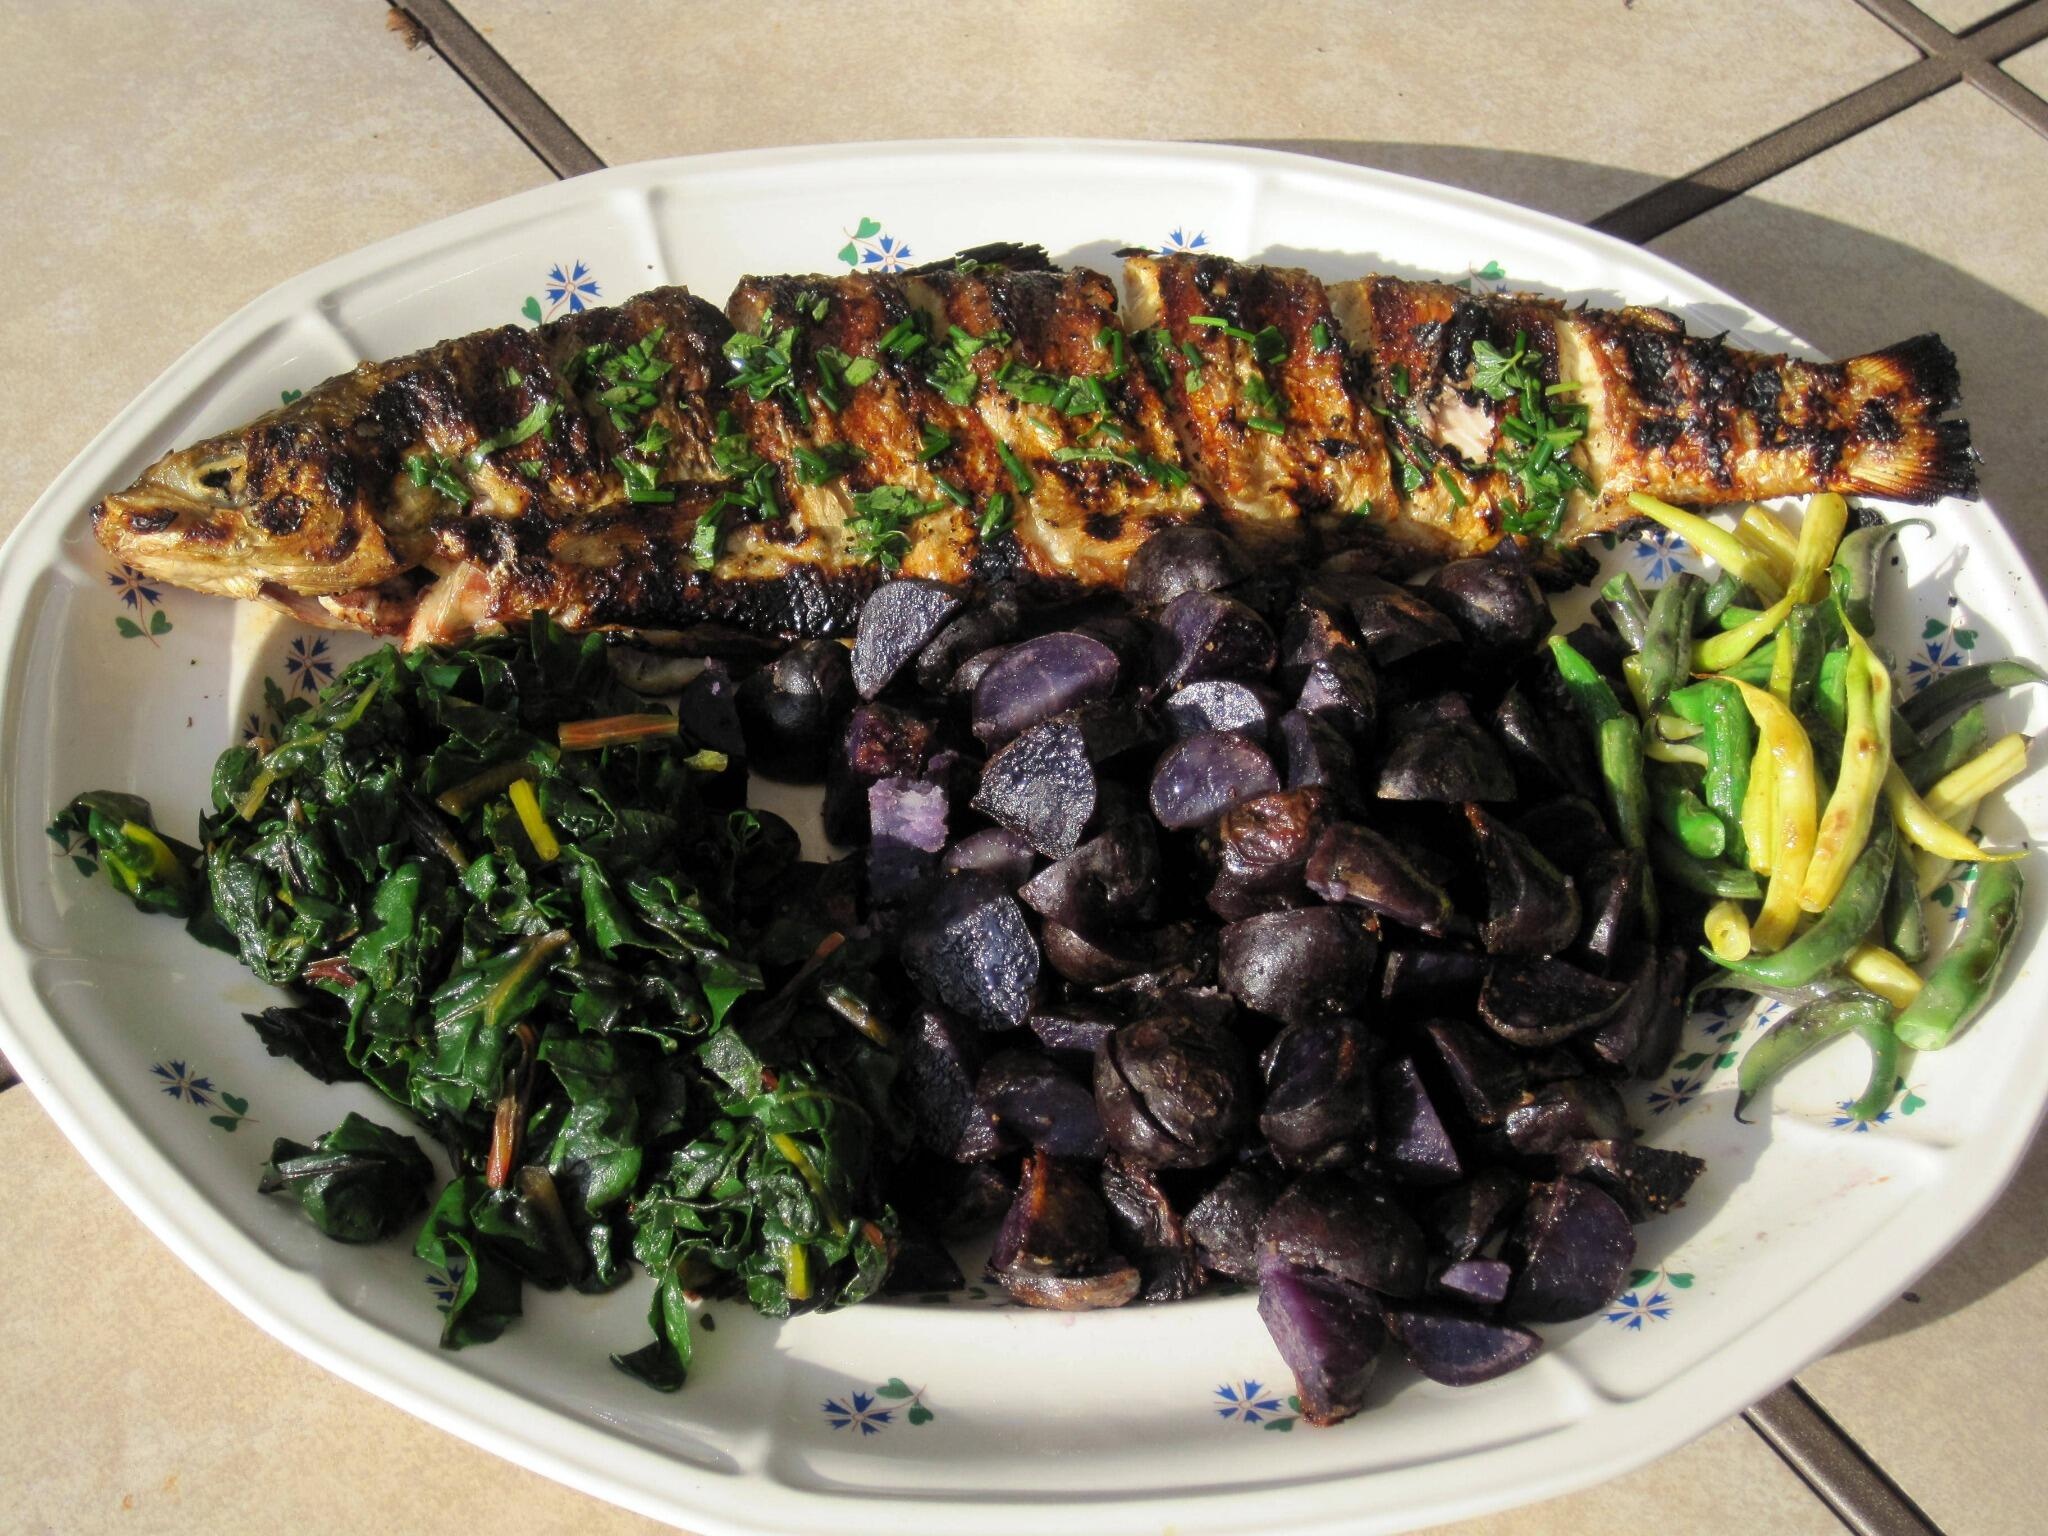 RT @SallyJWRead: @bonappetit inspired me to grill my first ever whole fish - whitefish w/purple potatoes, chard & beans http://t.co/h5EGyGQ4gS